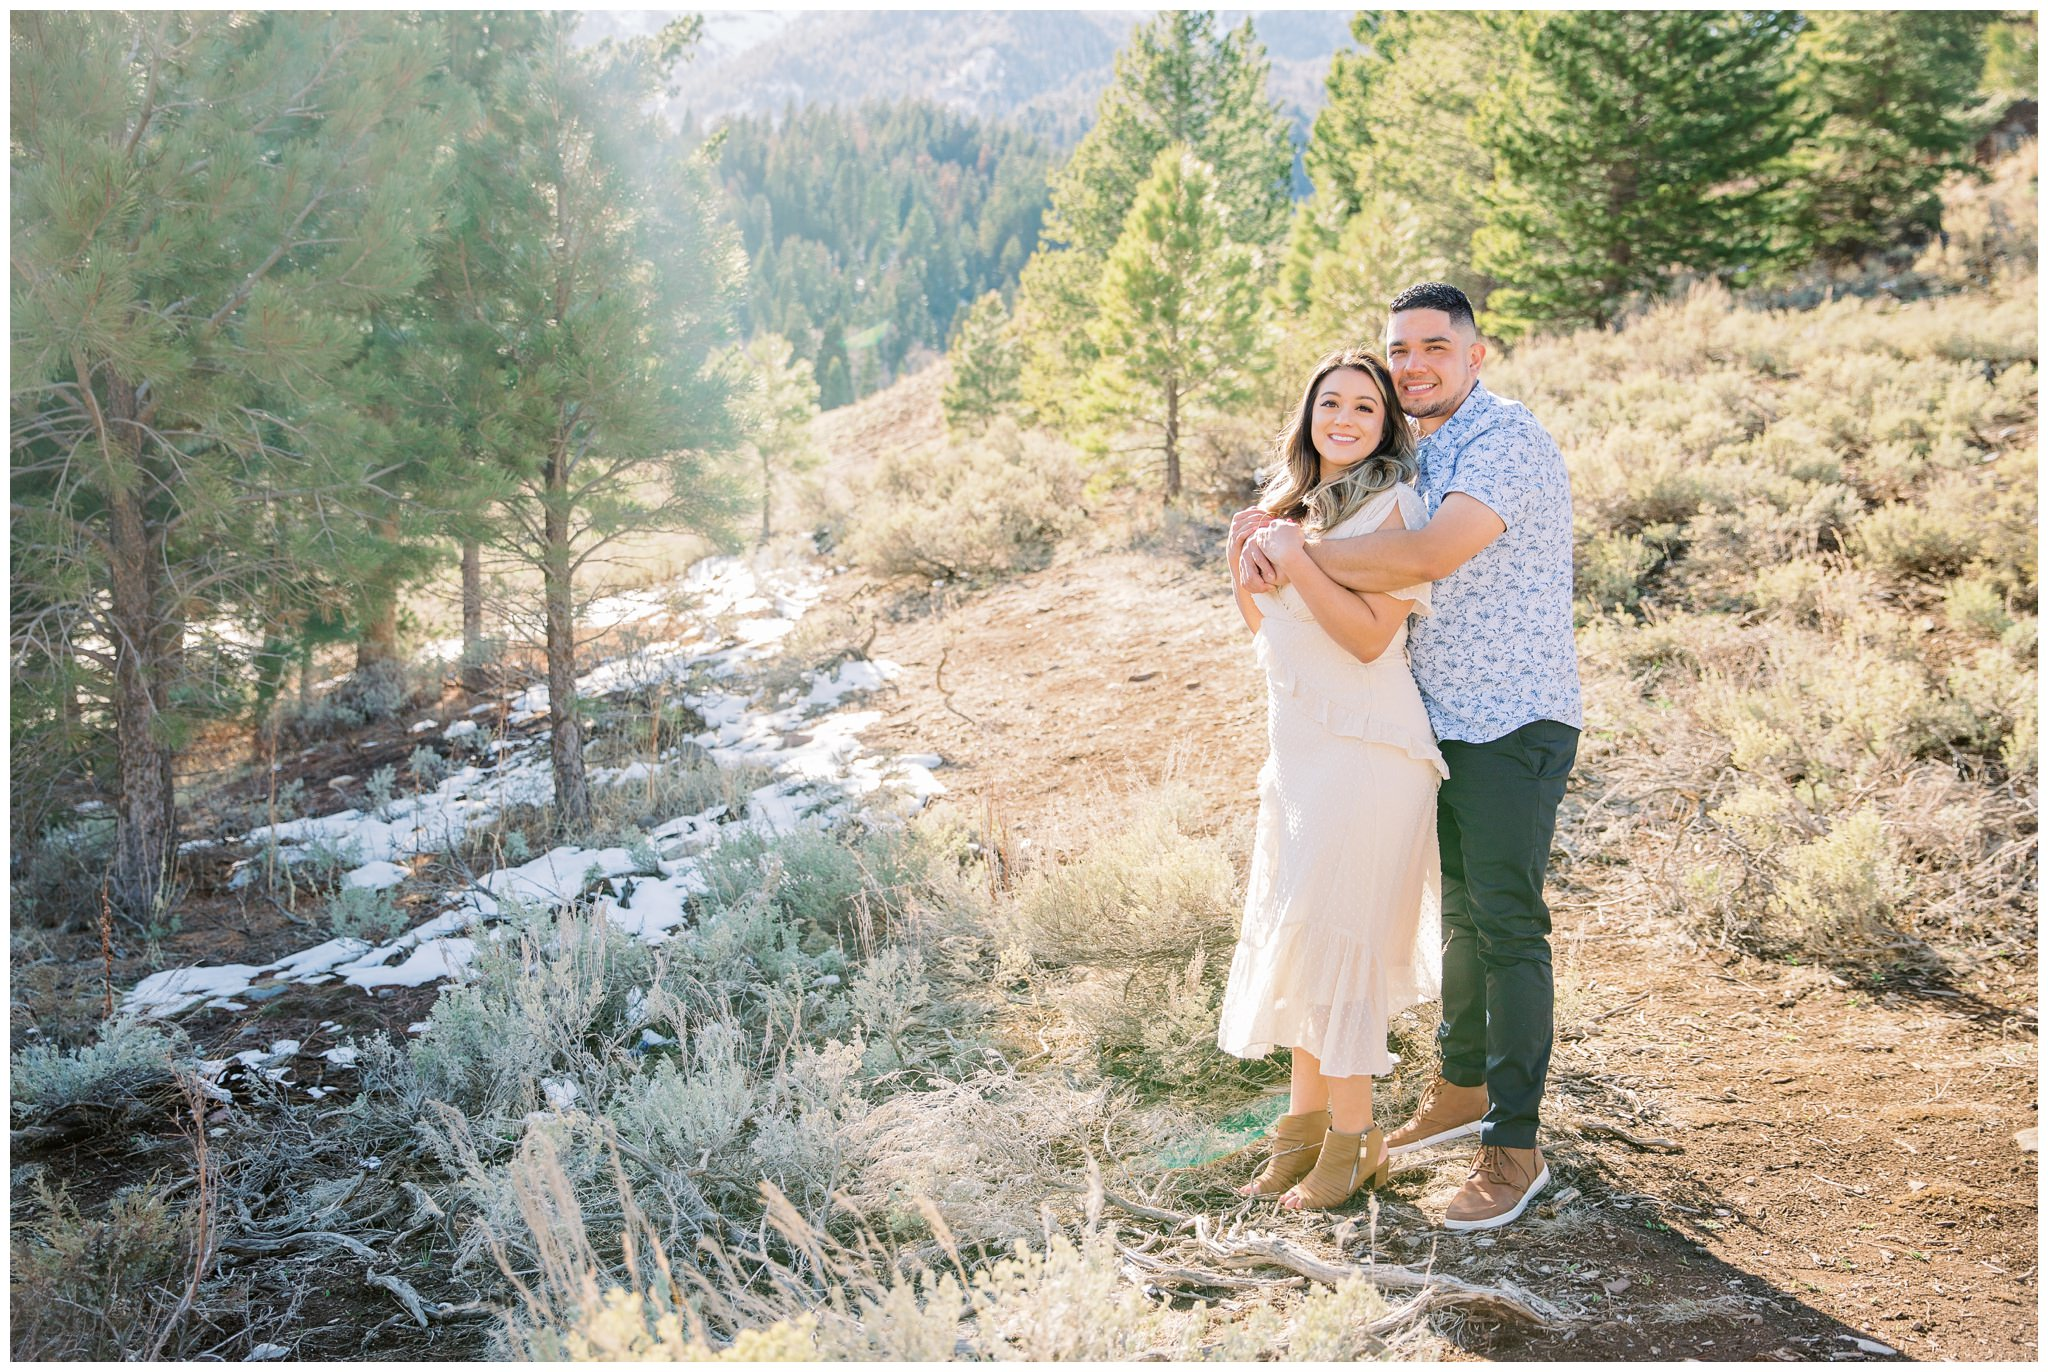 Mountainside engagement pictures at tibble fork reservoir in Utah up Provo Canyon